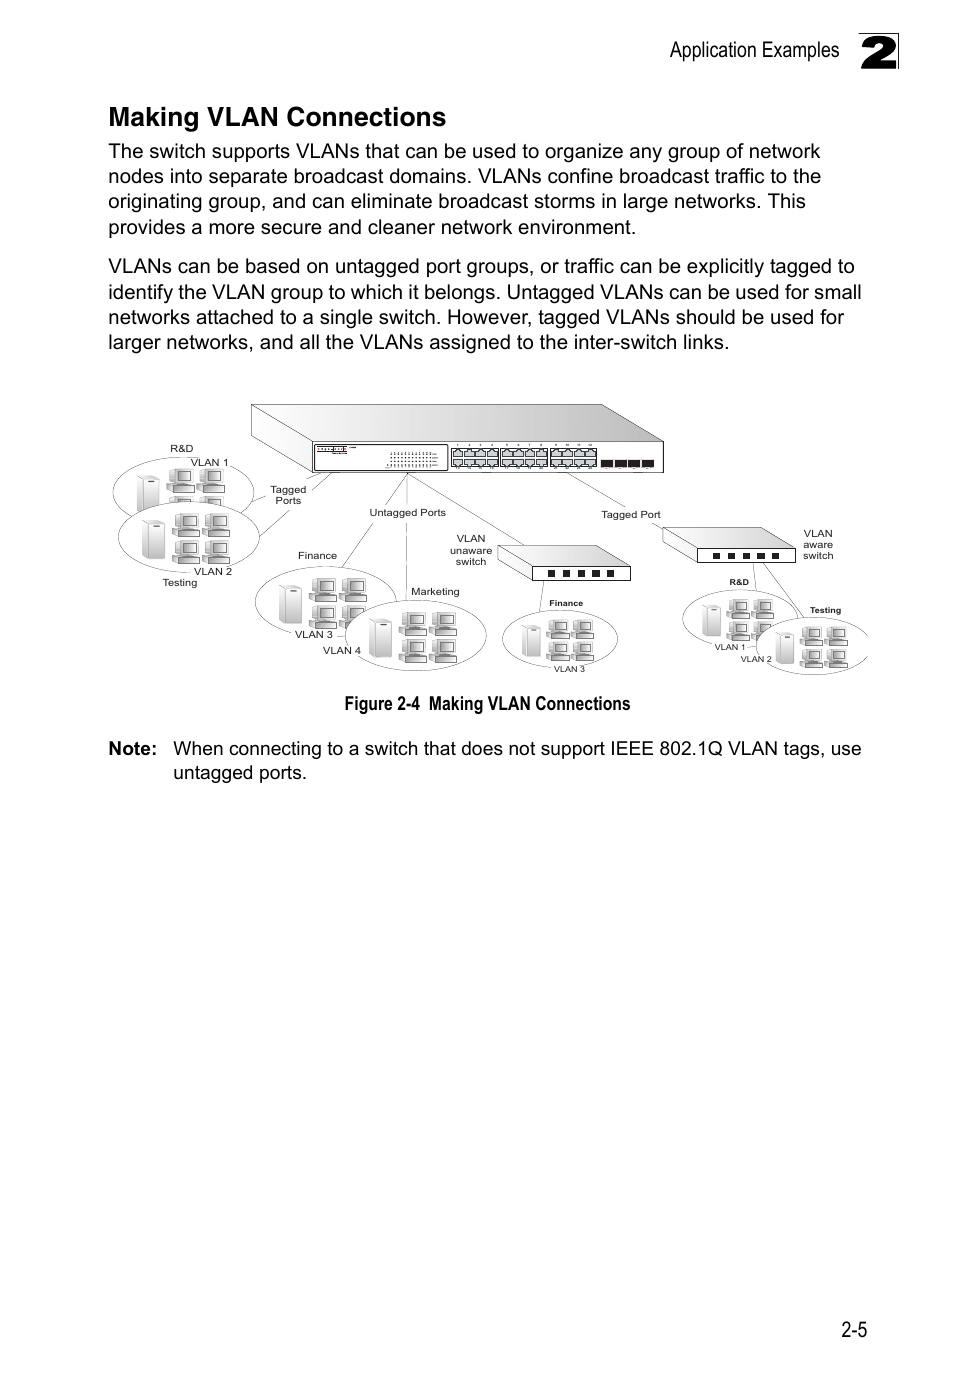 medium resolution of making vlan connections figure 2 4 application examples 2 5 ethernet connection diagram group picture image by tag